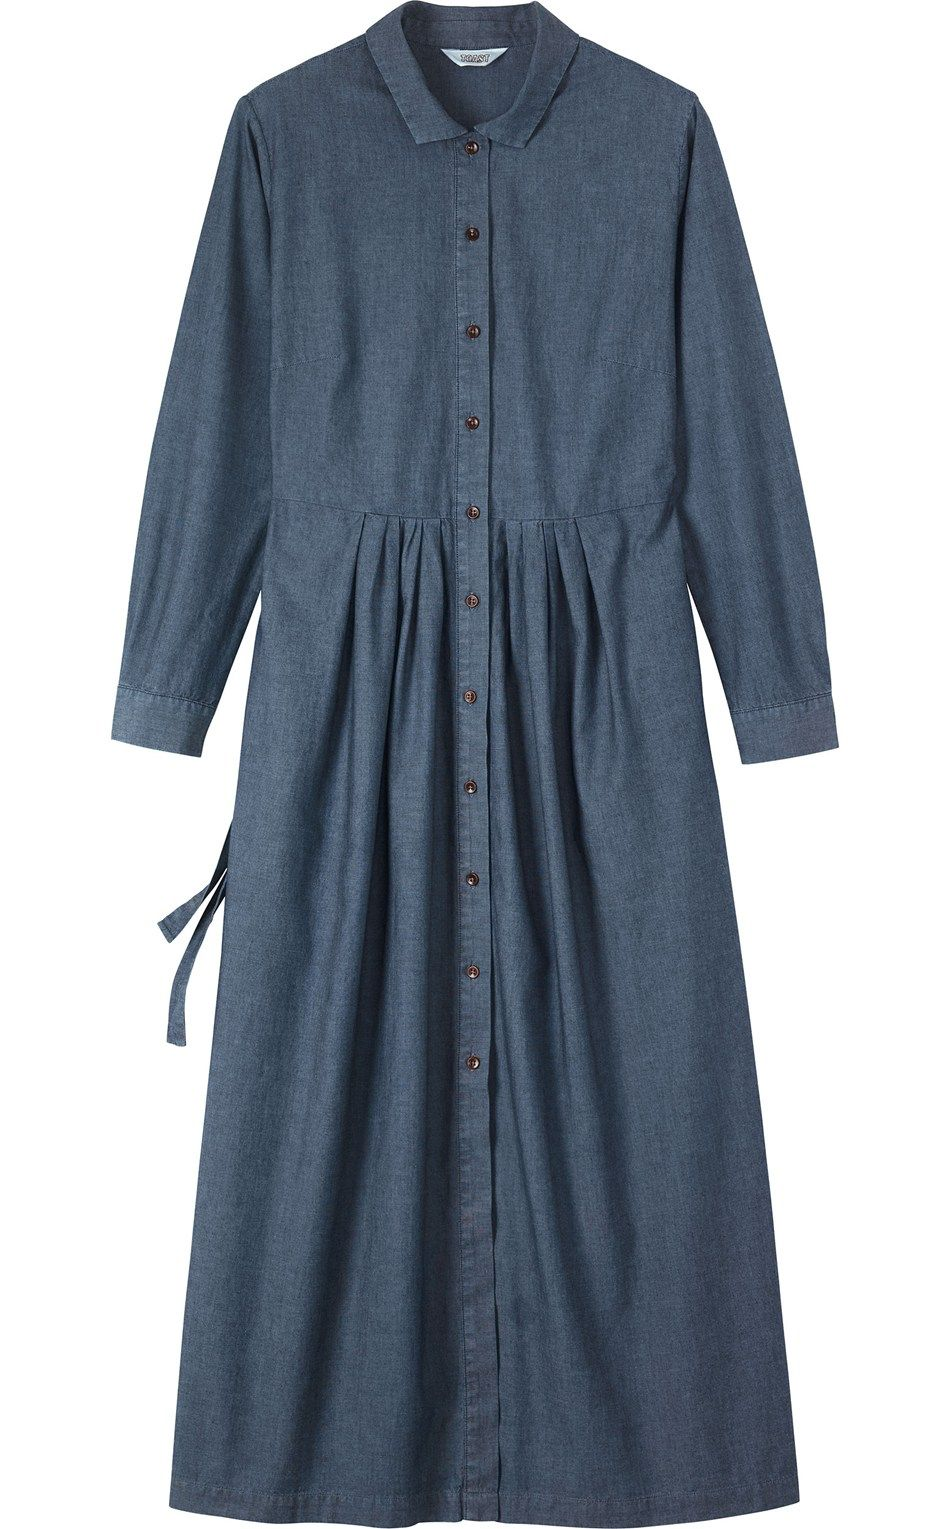 Modern dressmaker buttons - Toast Creates Modern Simple Clothing For Women And Functional Thoughtful Pieces For The Home Shop The Latest Collection Online And In Store